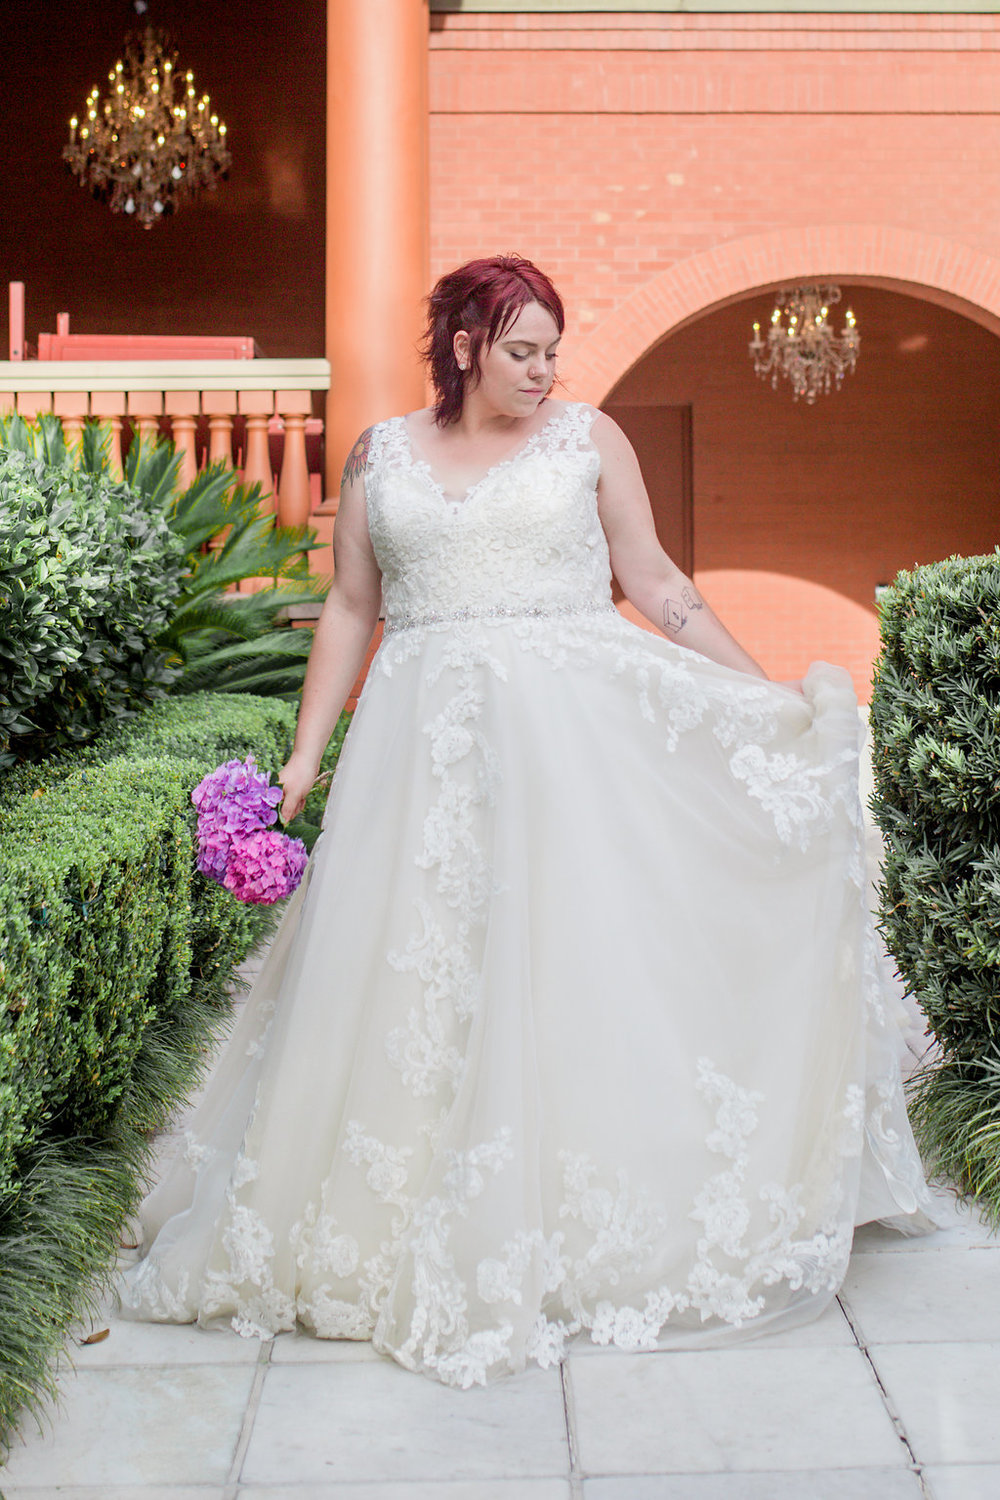 ivory-and-beau-bridal-boutique-alexis-sweet-photography-plus-sized-wedding-gowns-savannah-ga-plus-sized-wedding-dress-savannah-ga-12.jpg